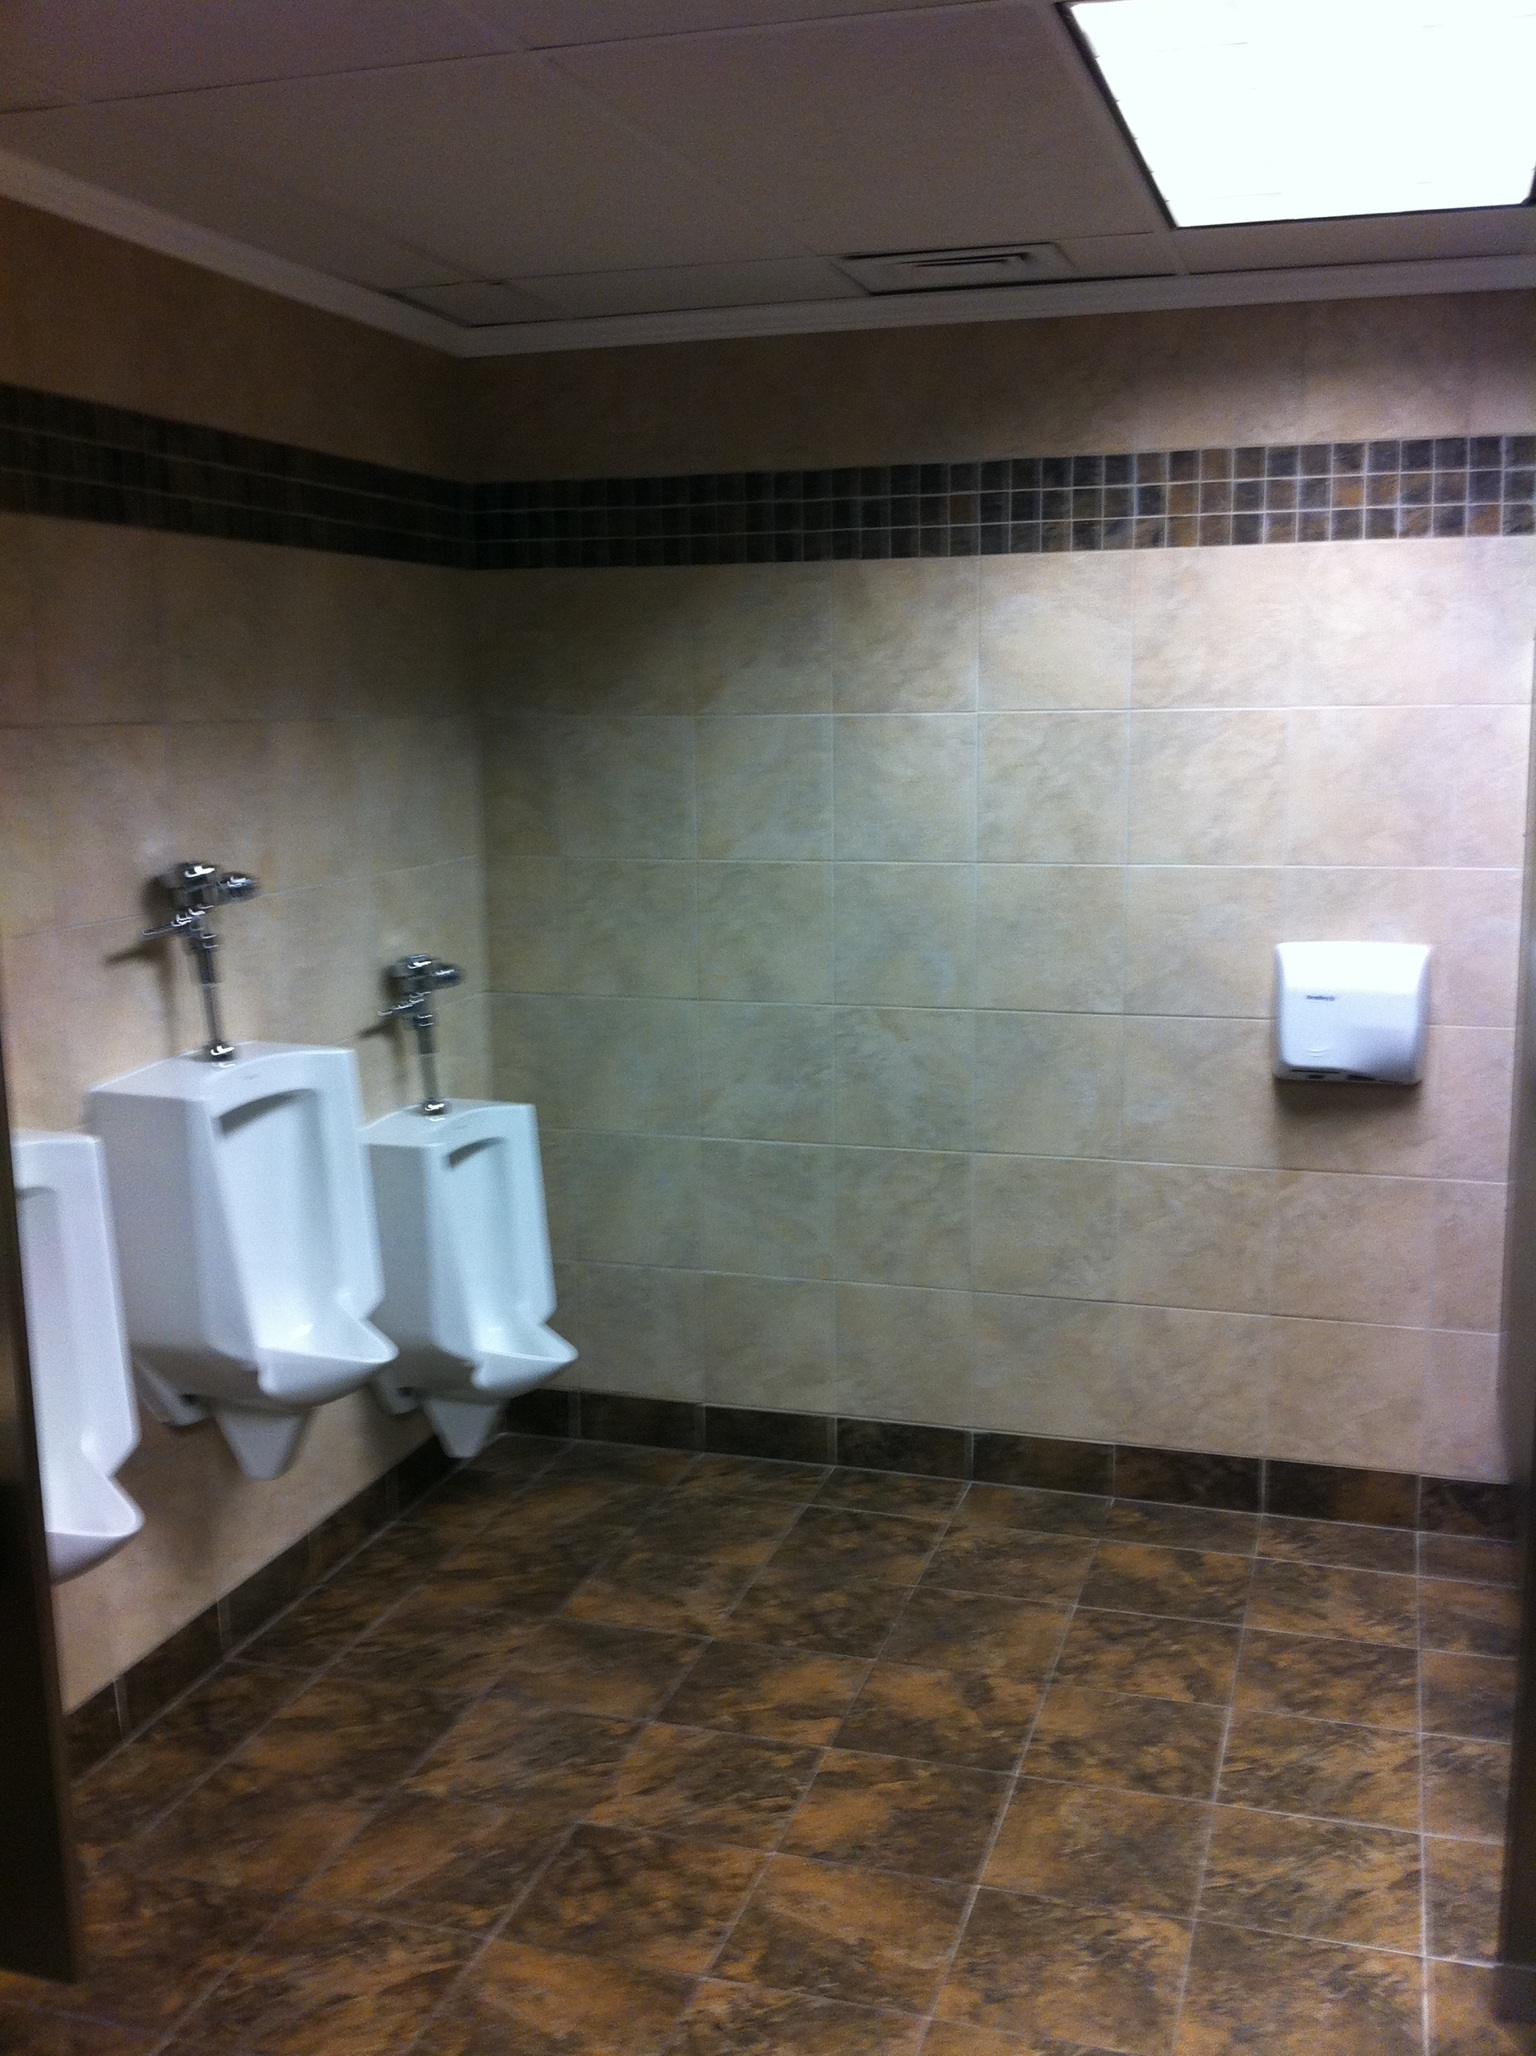 Sears Bathroom Remodel Petrill Construction Management